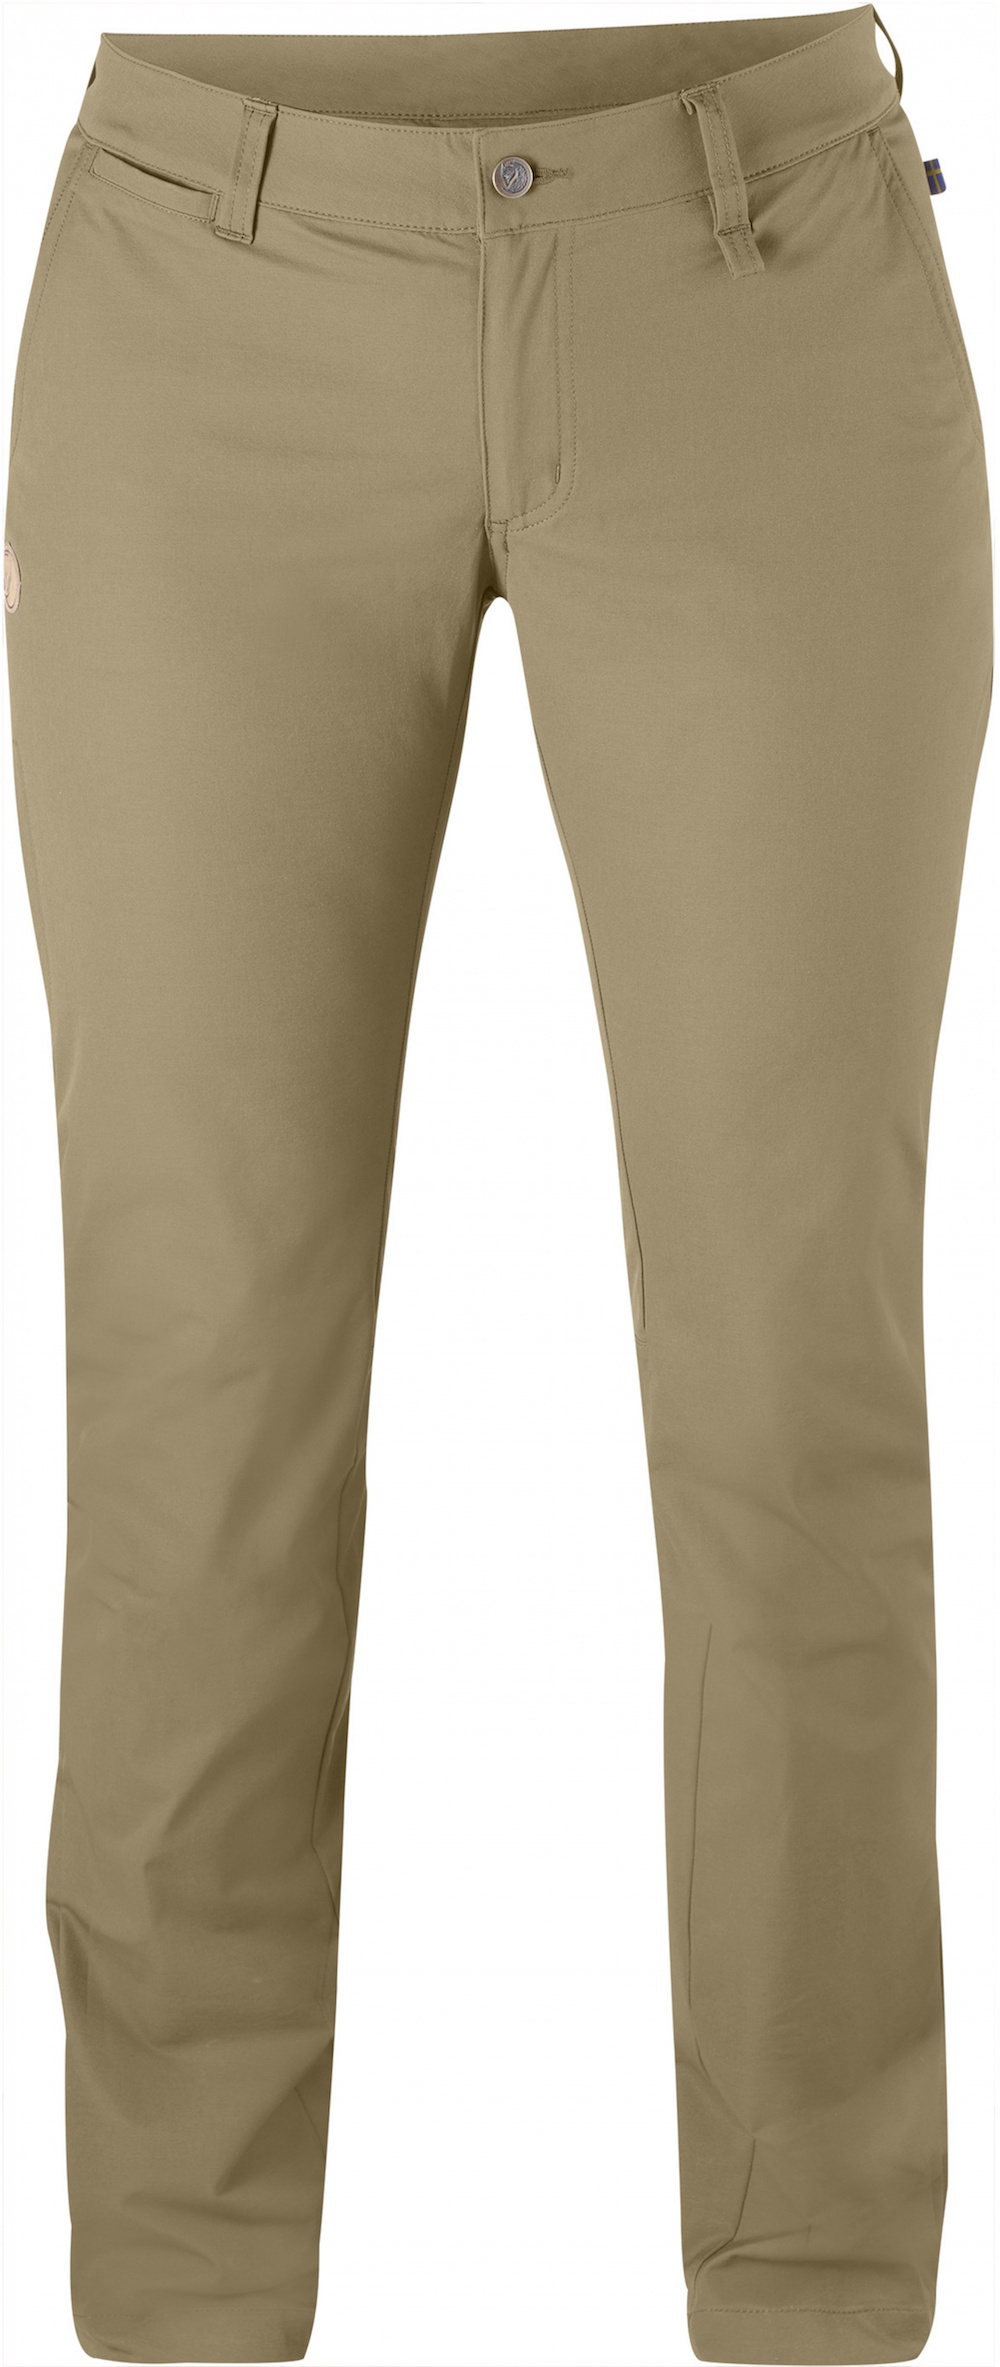 Fjällräven Abisko Stretch Trousers W